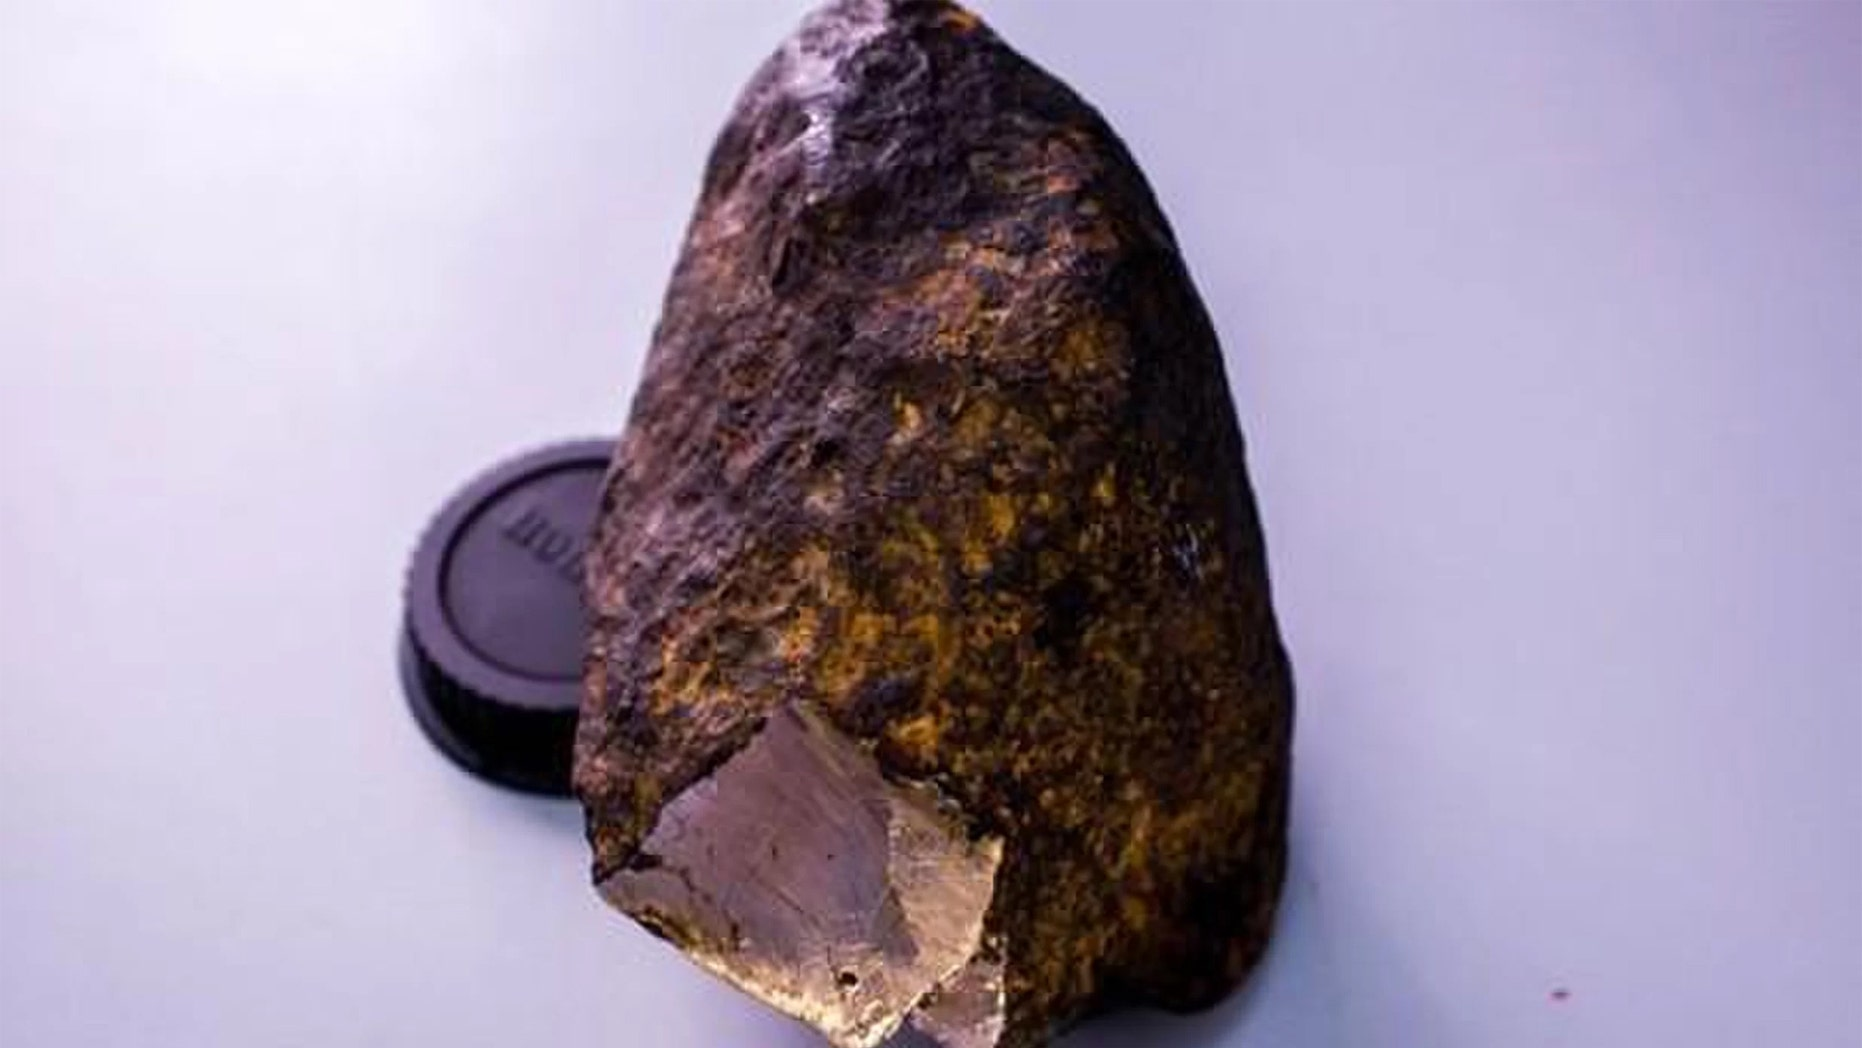 Scientists discovered a new mineral in the Uakit meteorite. Credit: webmineral.ru